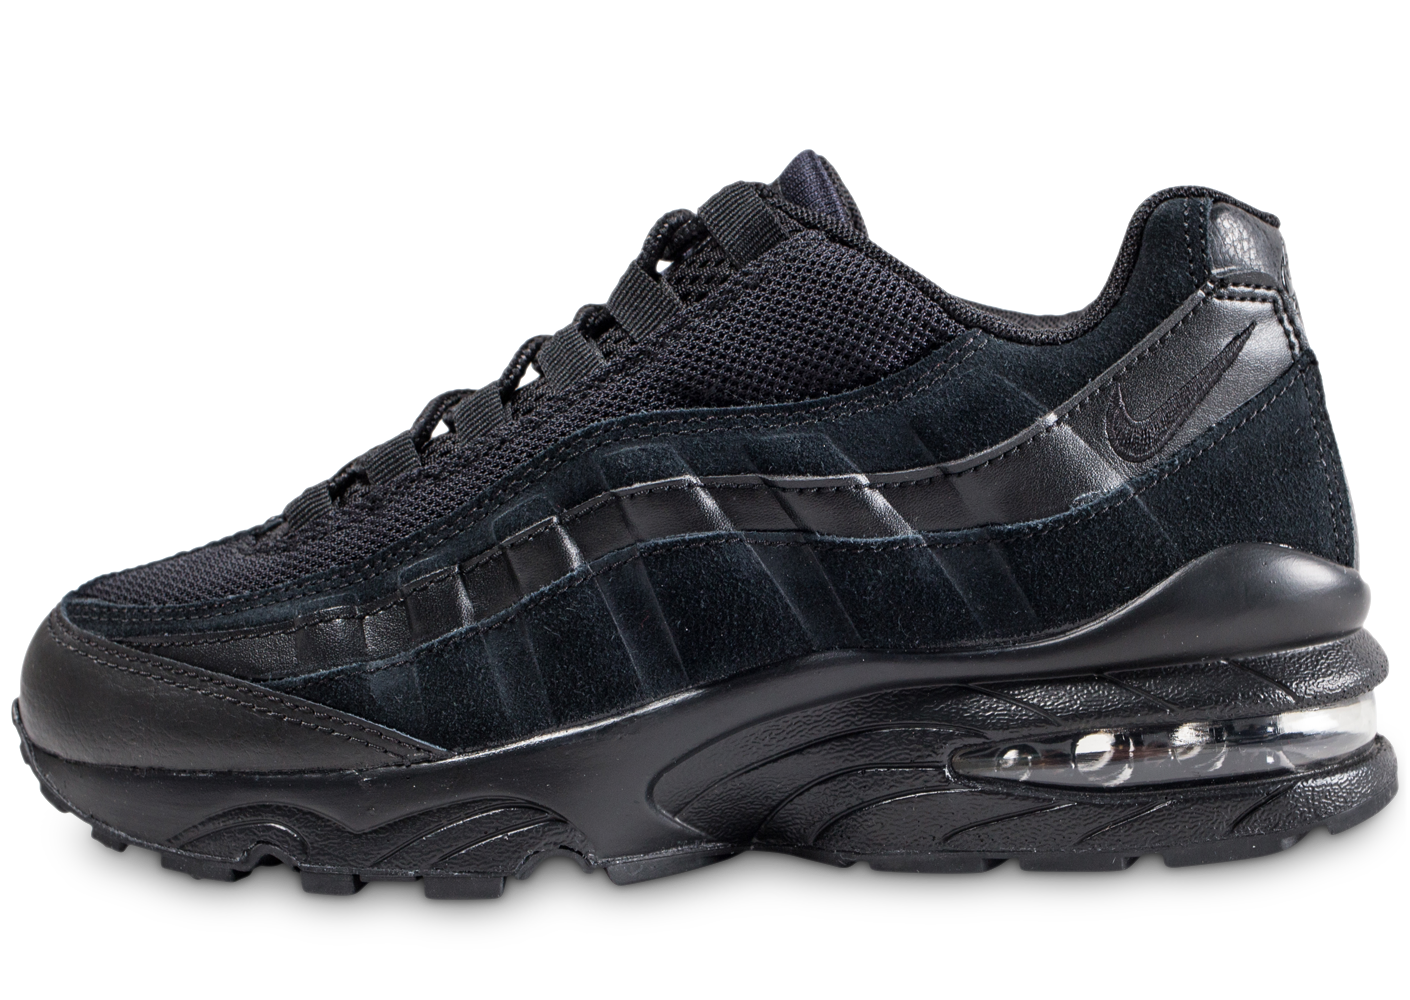 Nike Enfant Air Max 95 Junior Noire Baskets